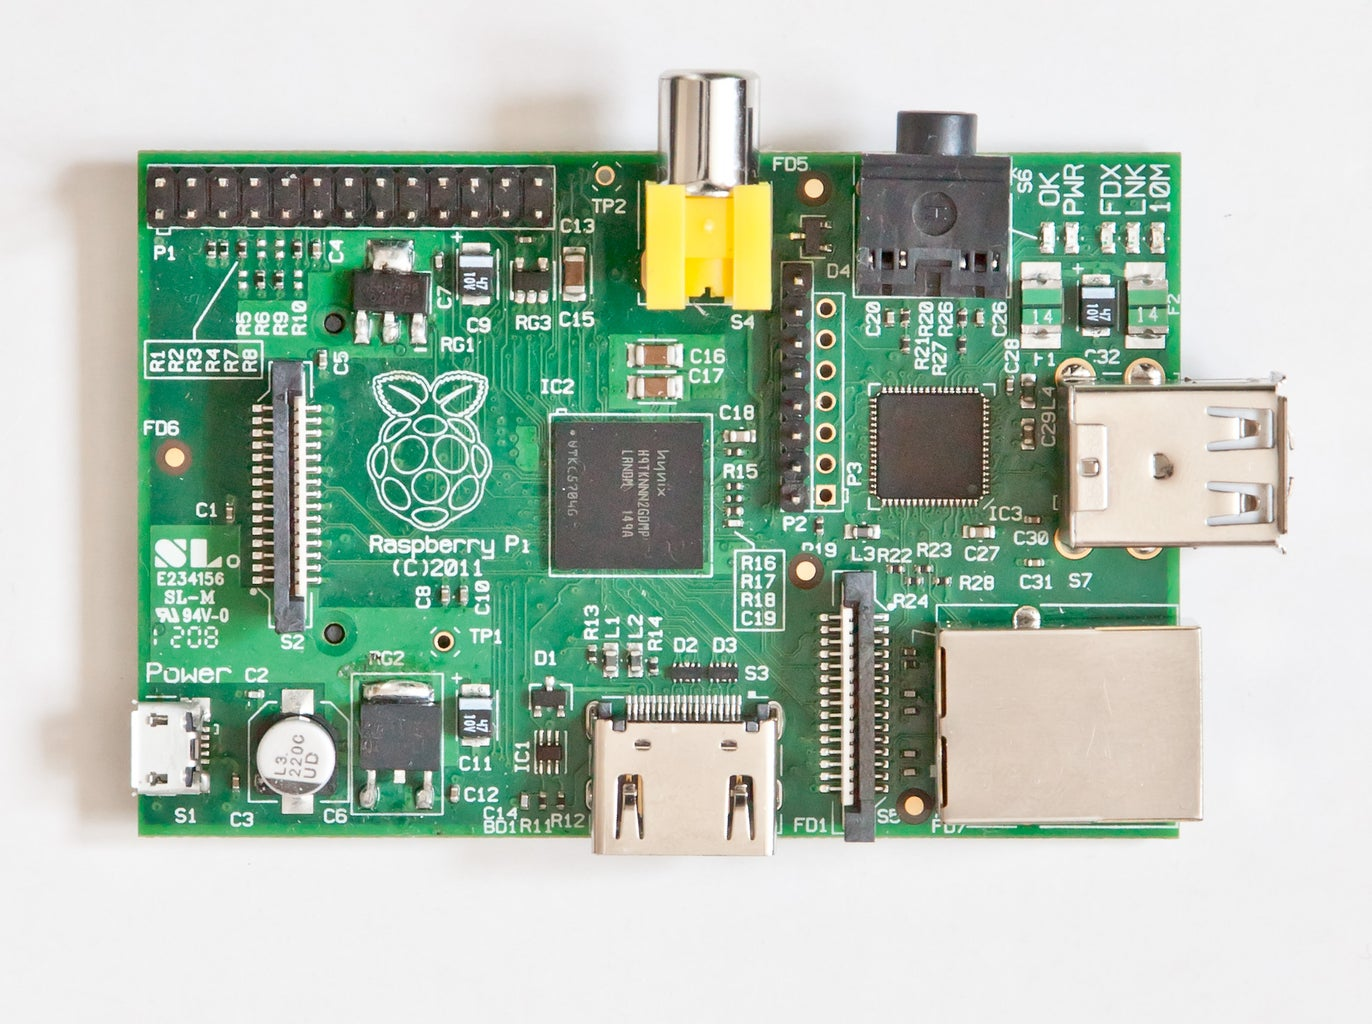 Setting Up the Pi